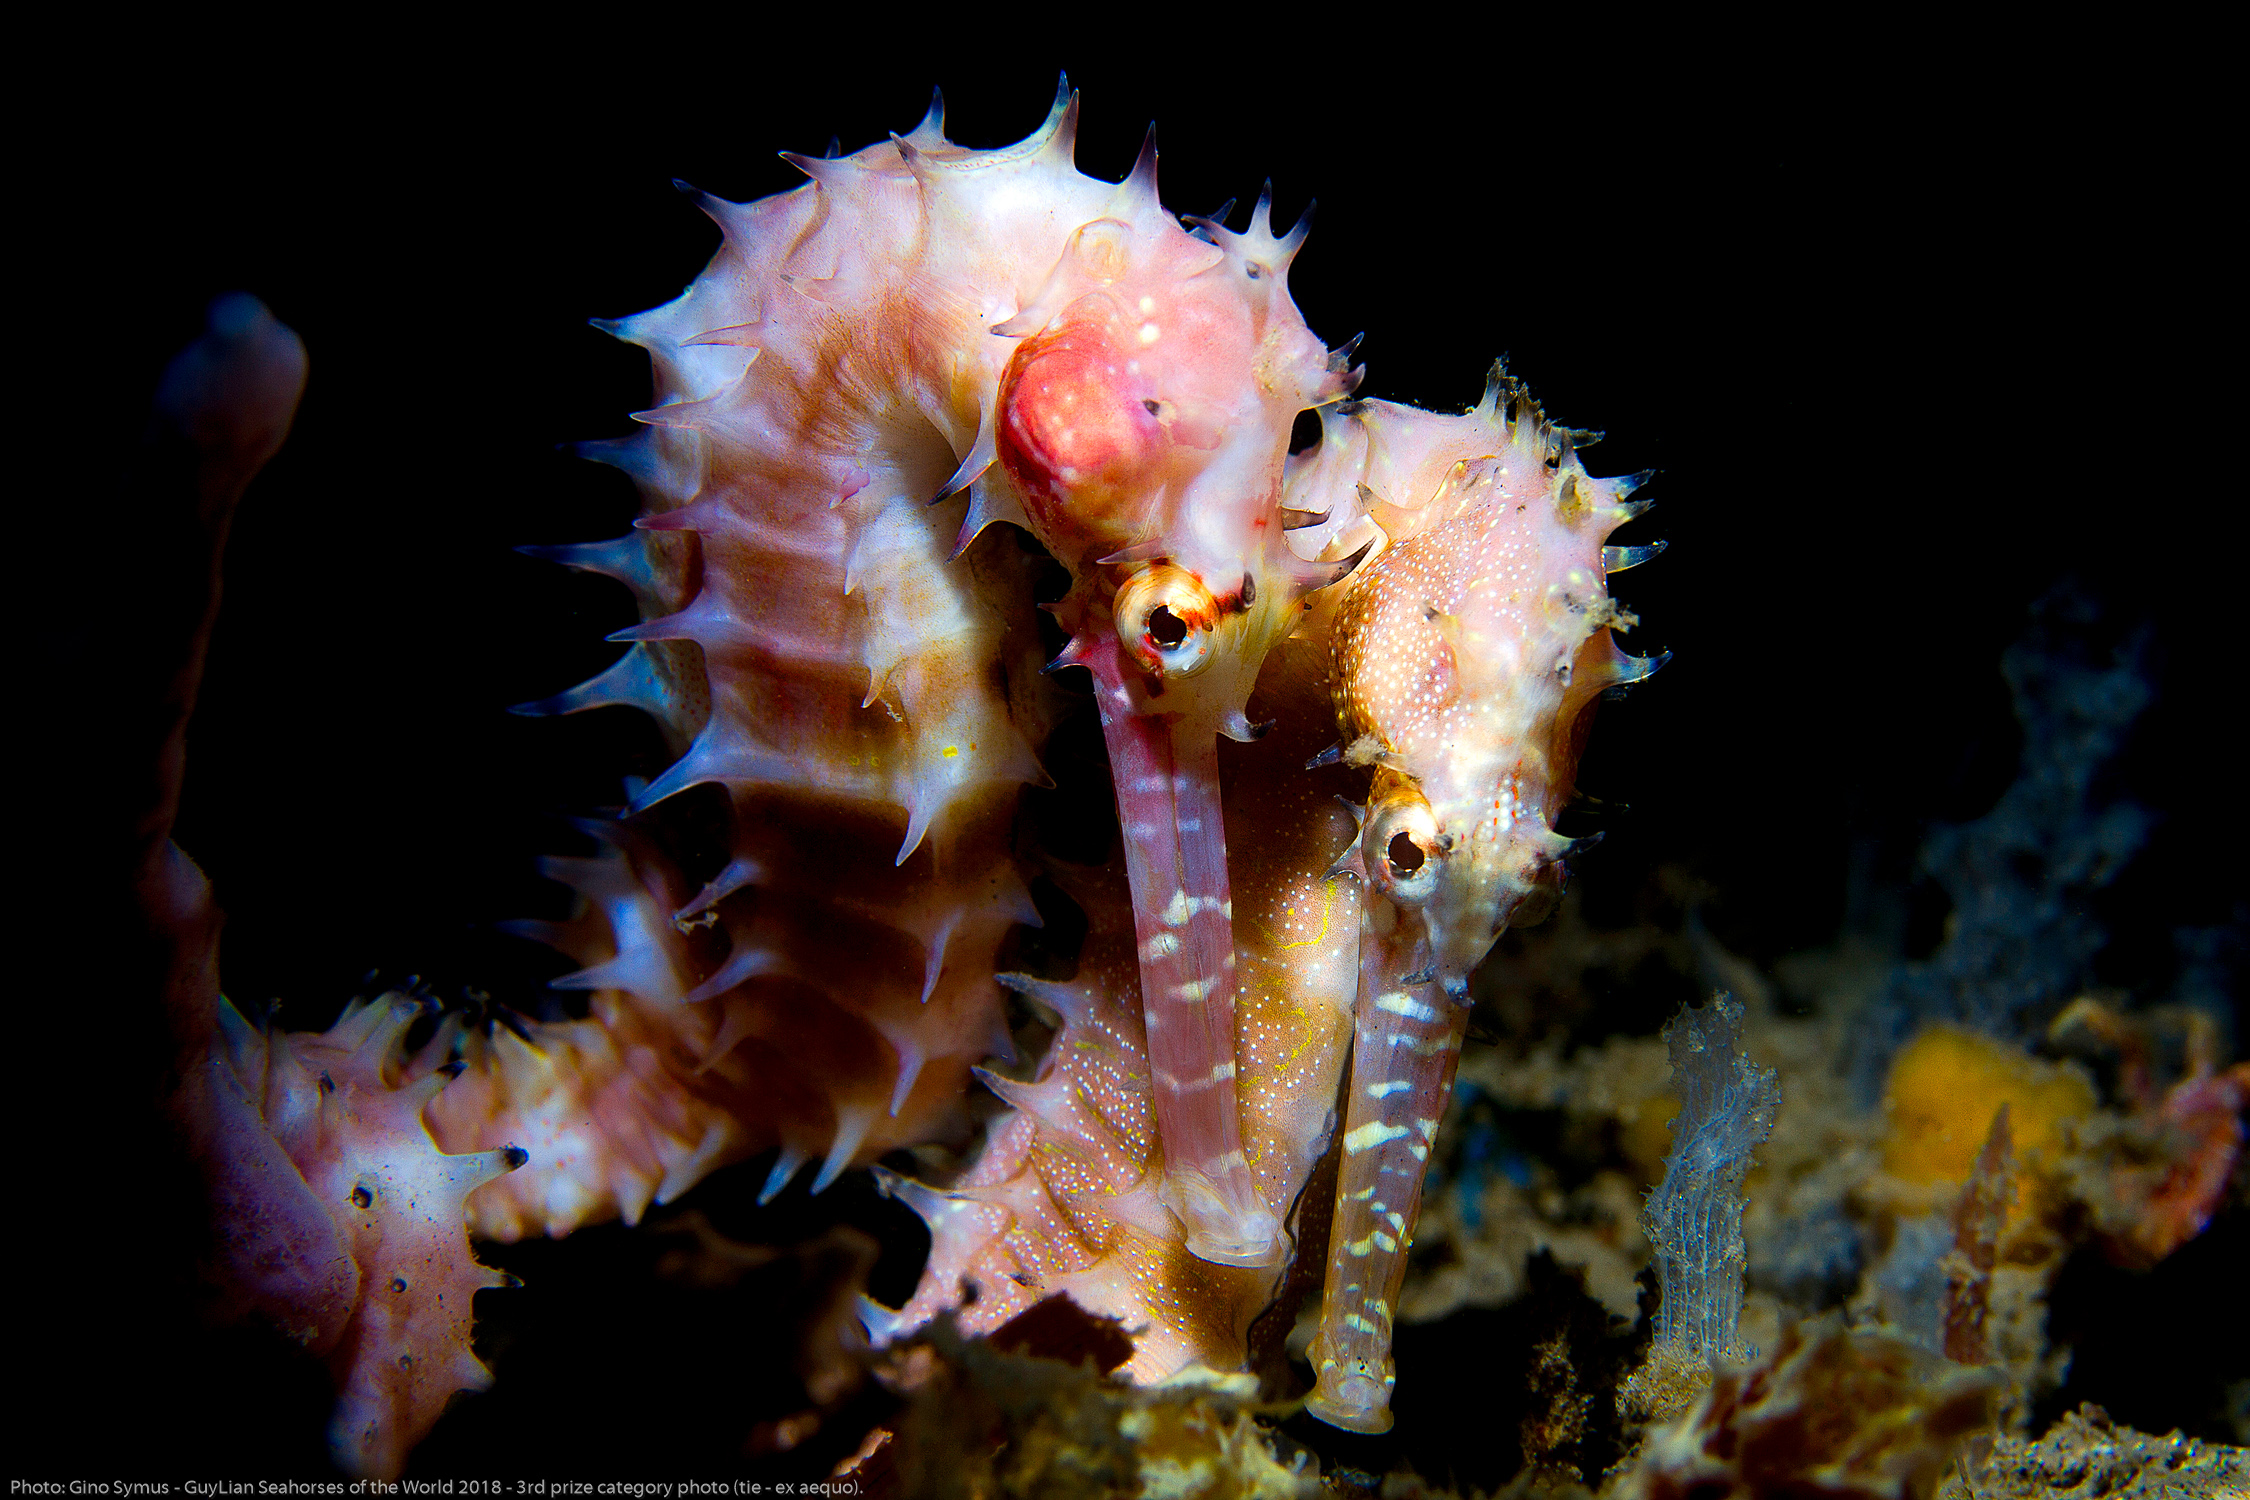 """3rd Grand Prize (tie): """"Happy together"""" Thorny seahorse ( Hippocampus histrix ) in Negros, Philippines. Photo by Gino Symus/Guylian Seahorses of the World."""